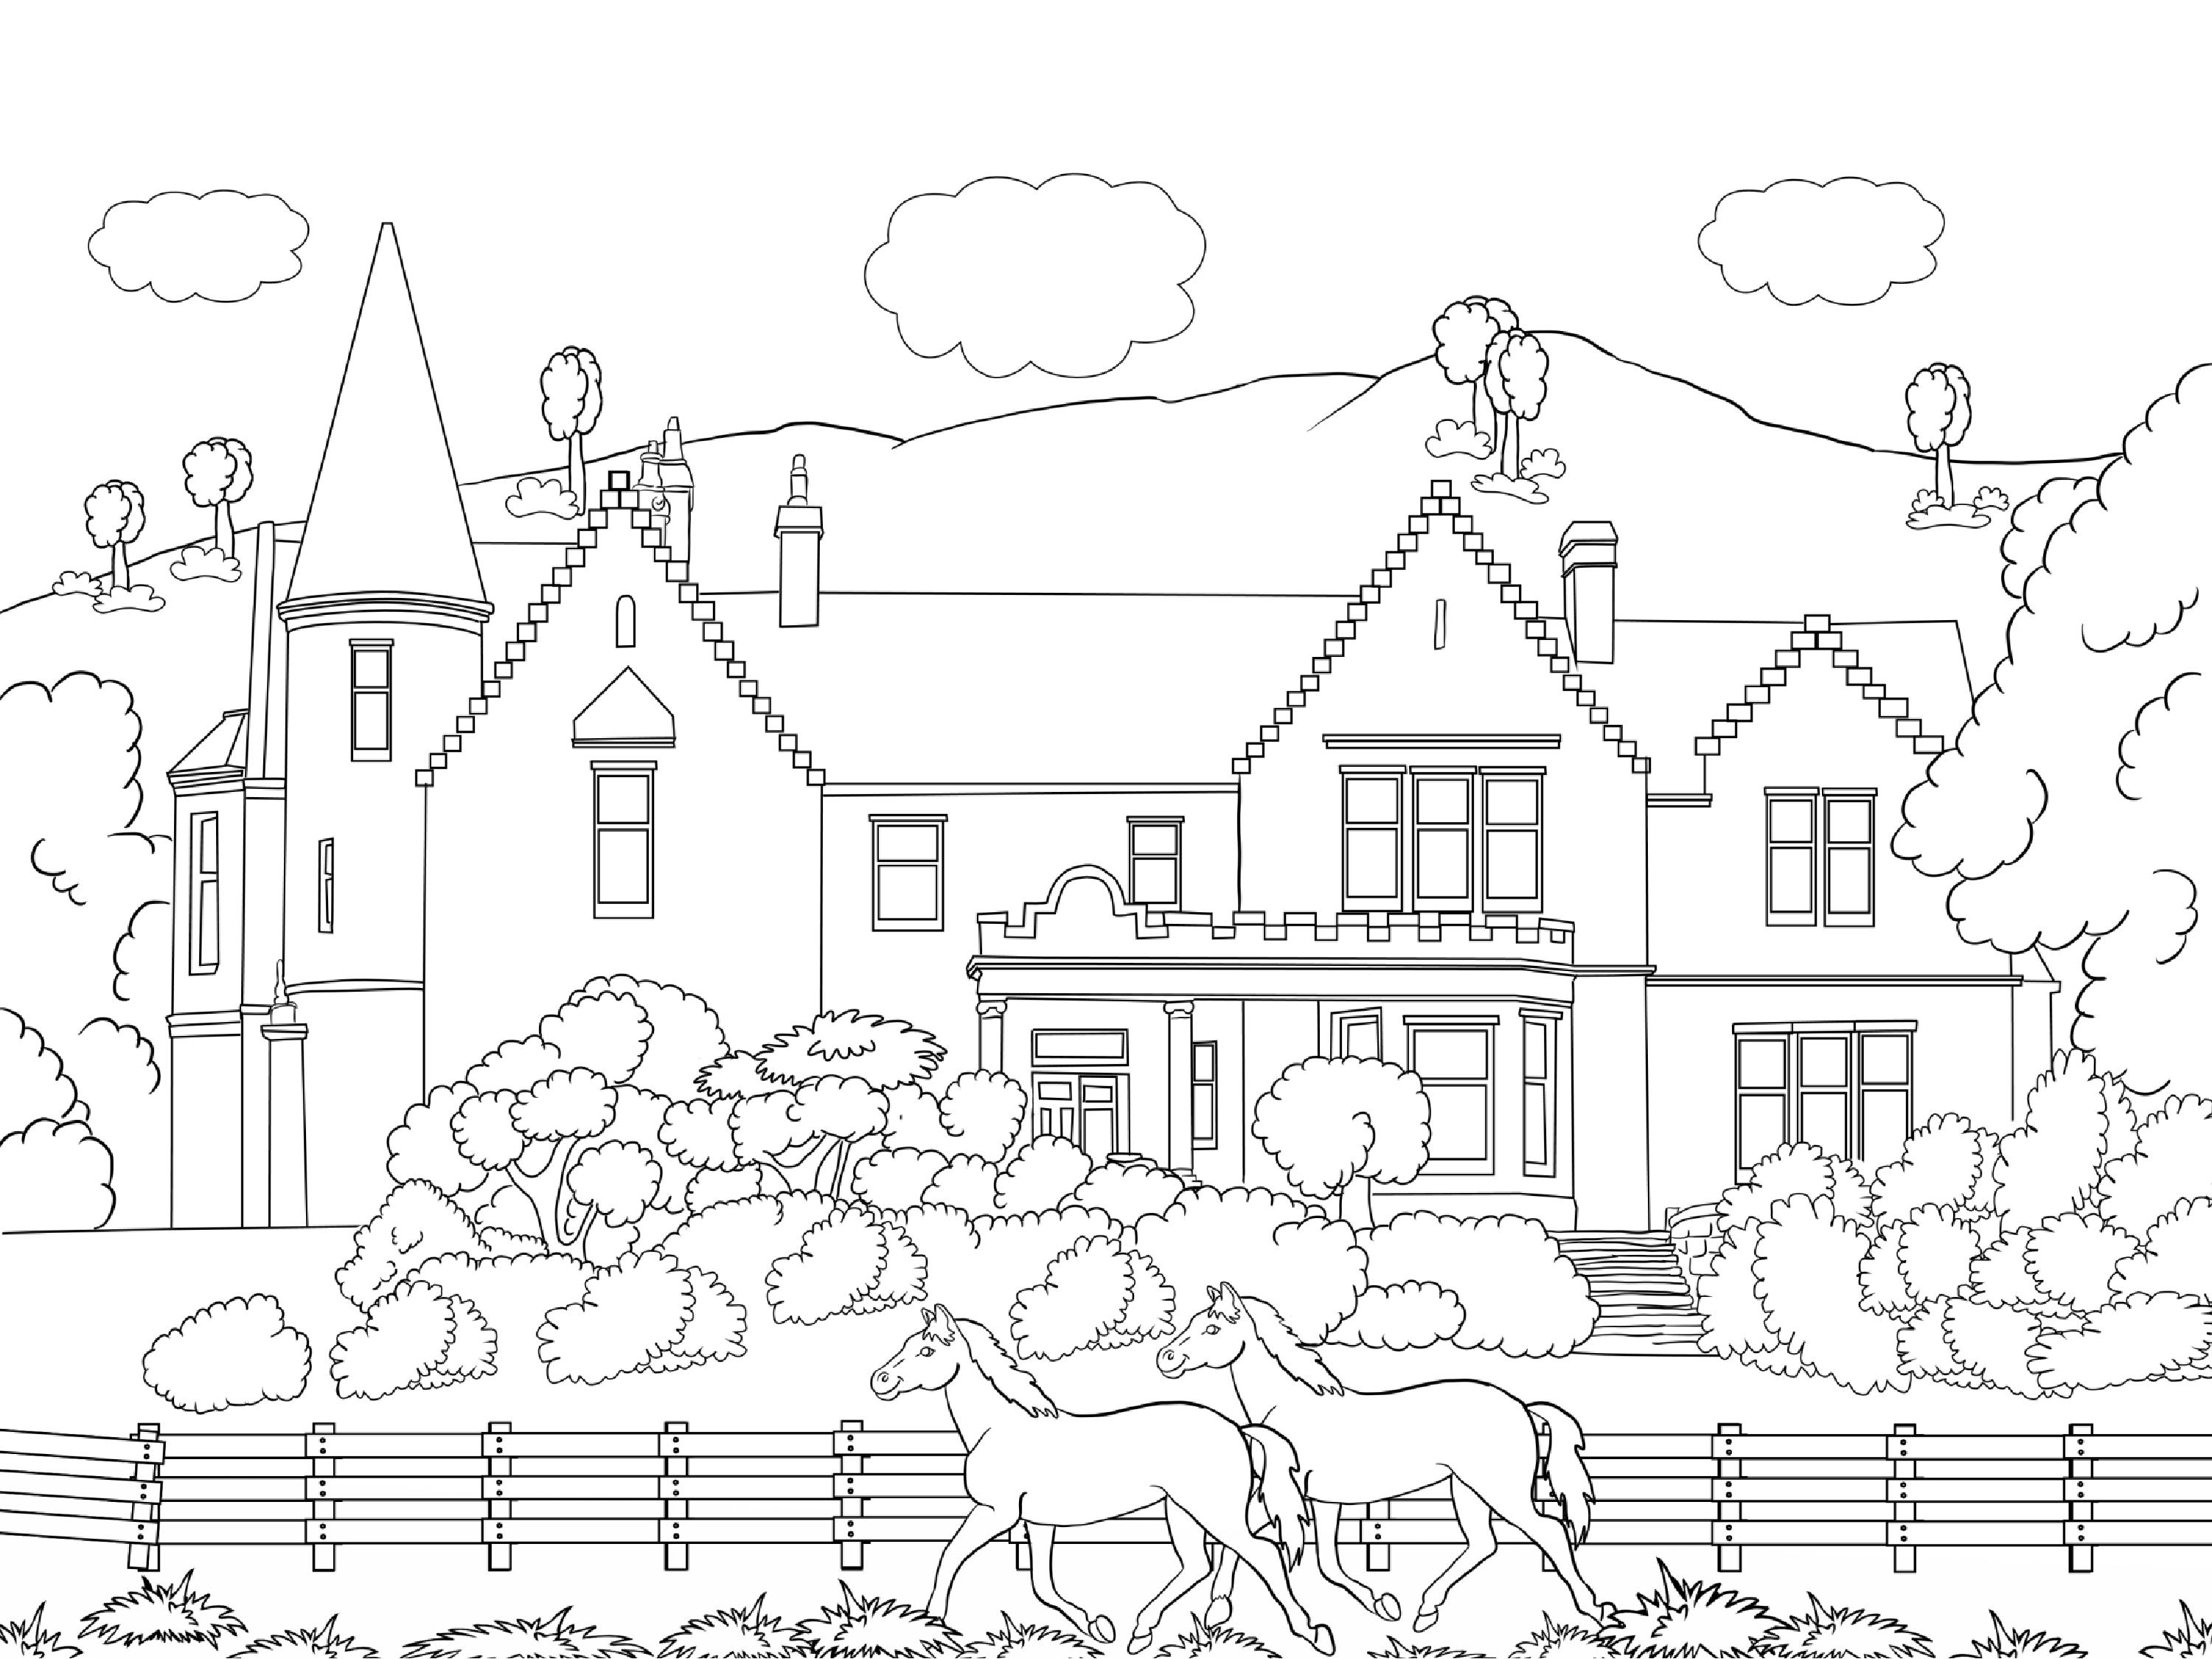 landscape-colouring-book-for-kids-page-005